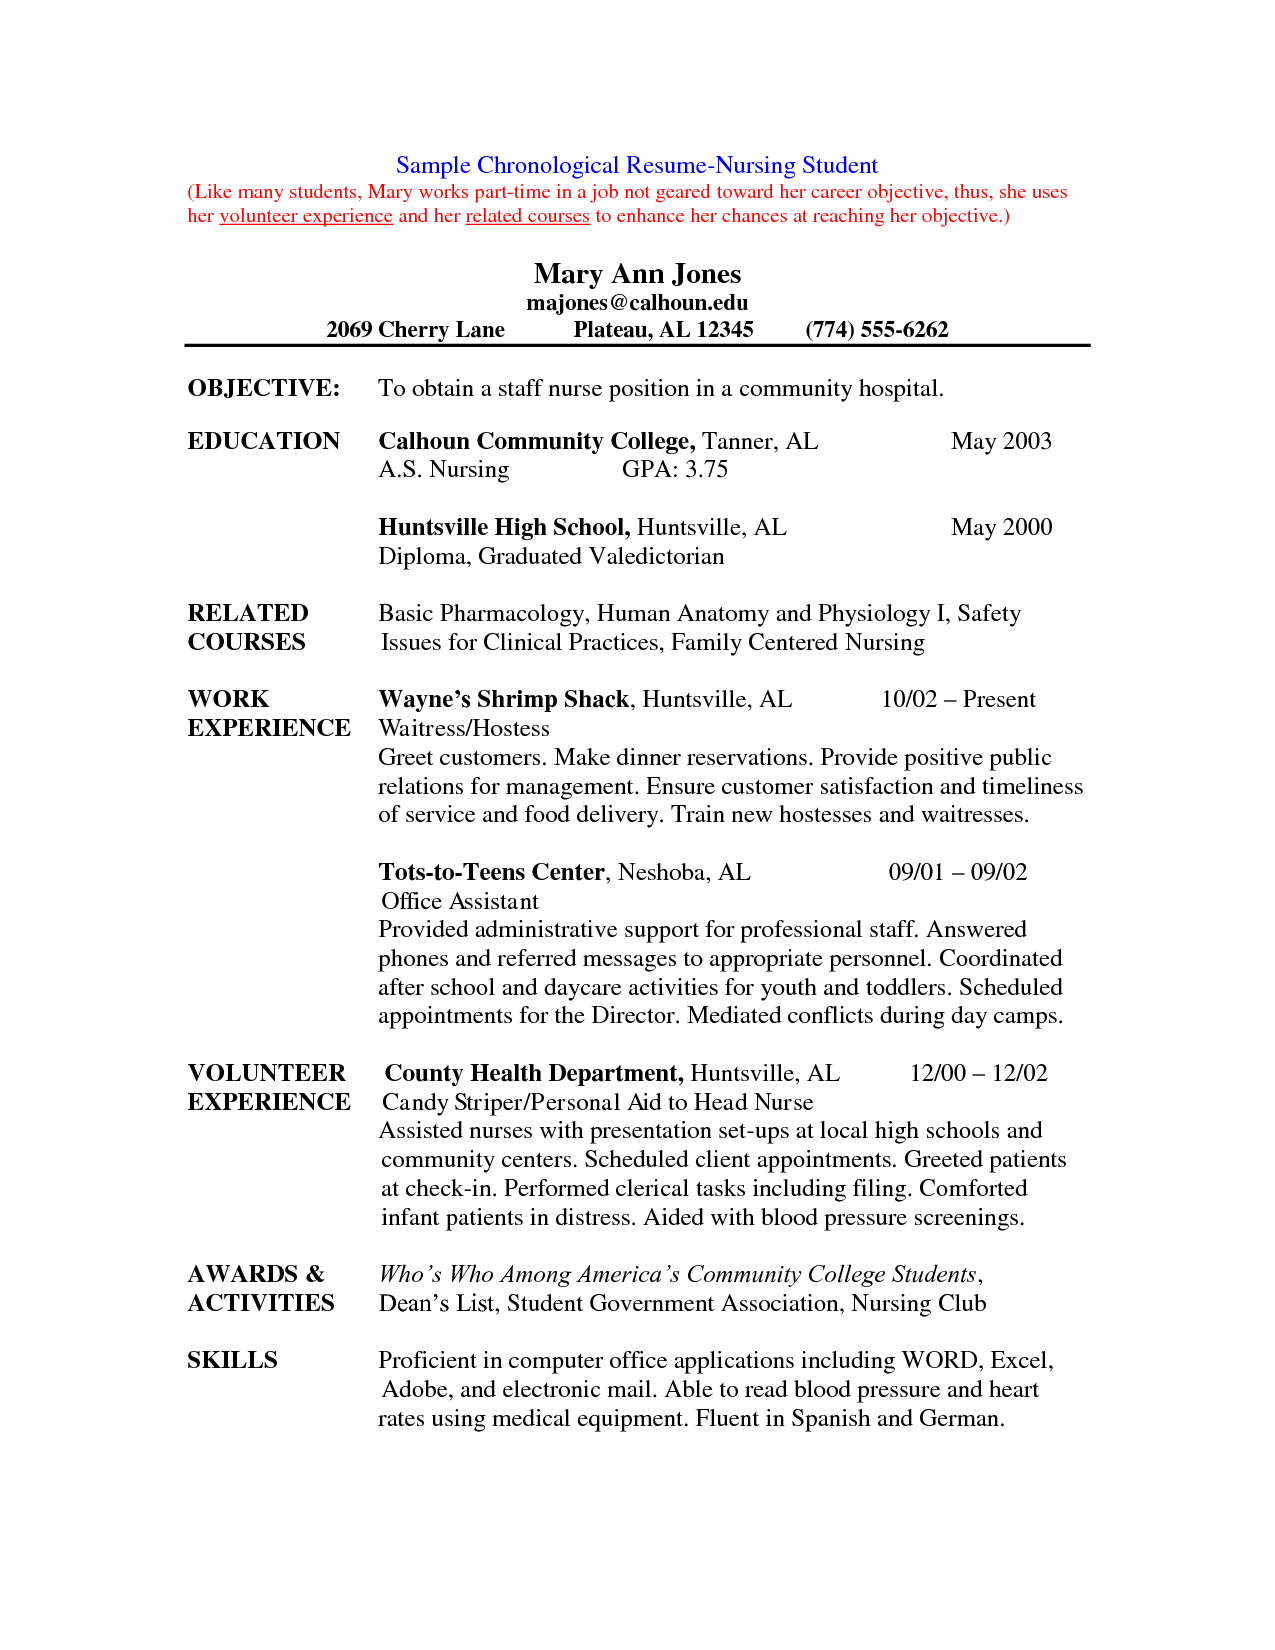 Nursing school resume examples